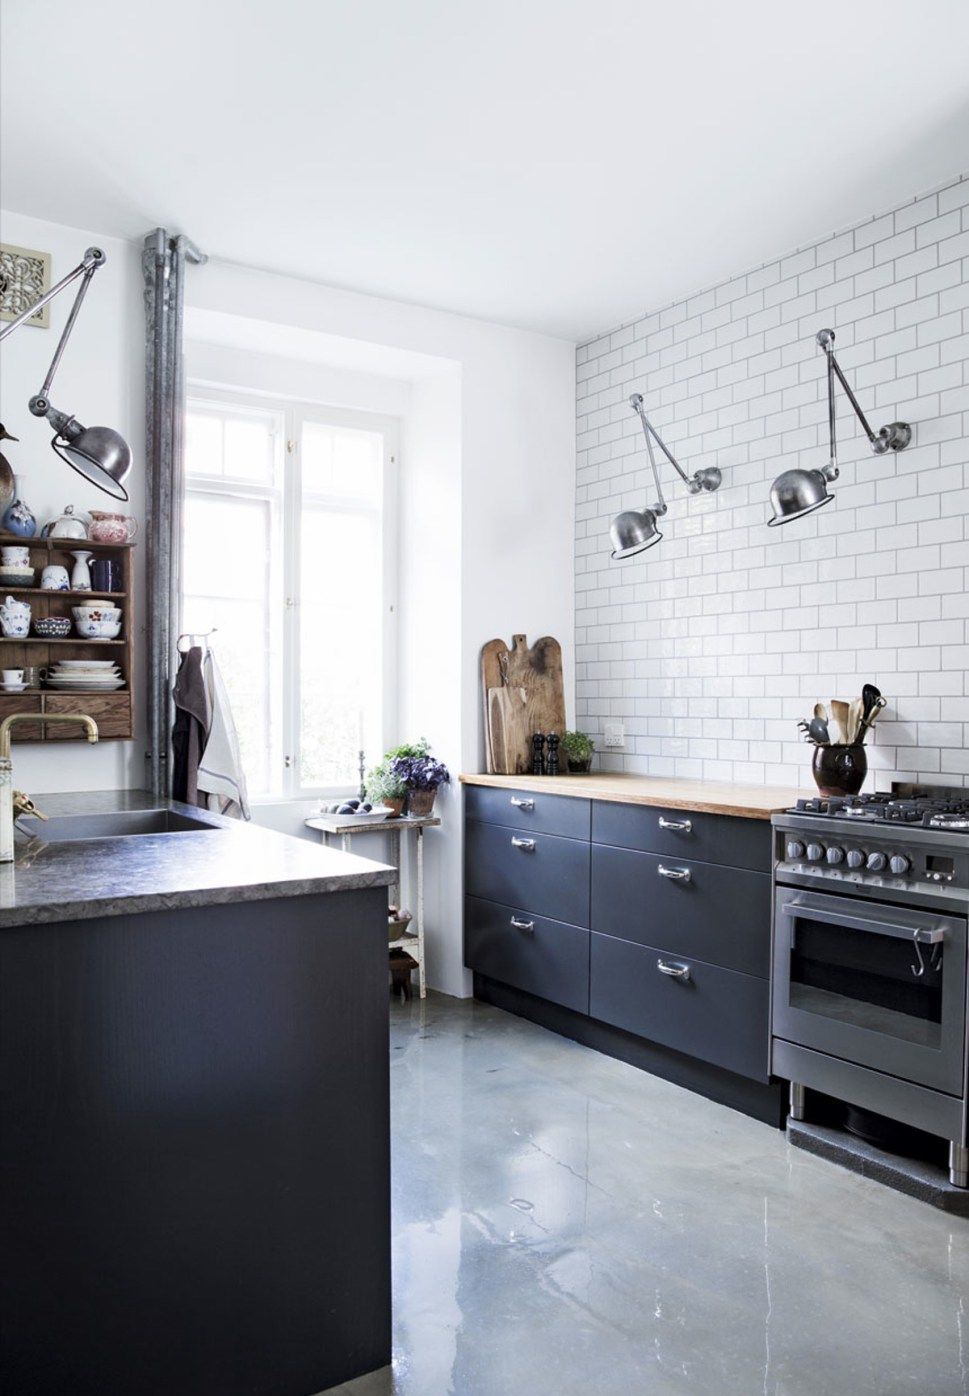 10 cuisines au look industriel | Kitchens, Kitchen styling and Interiors